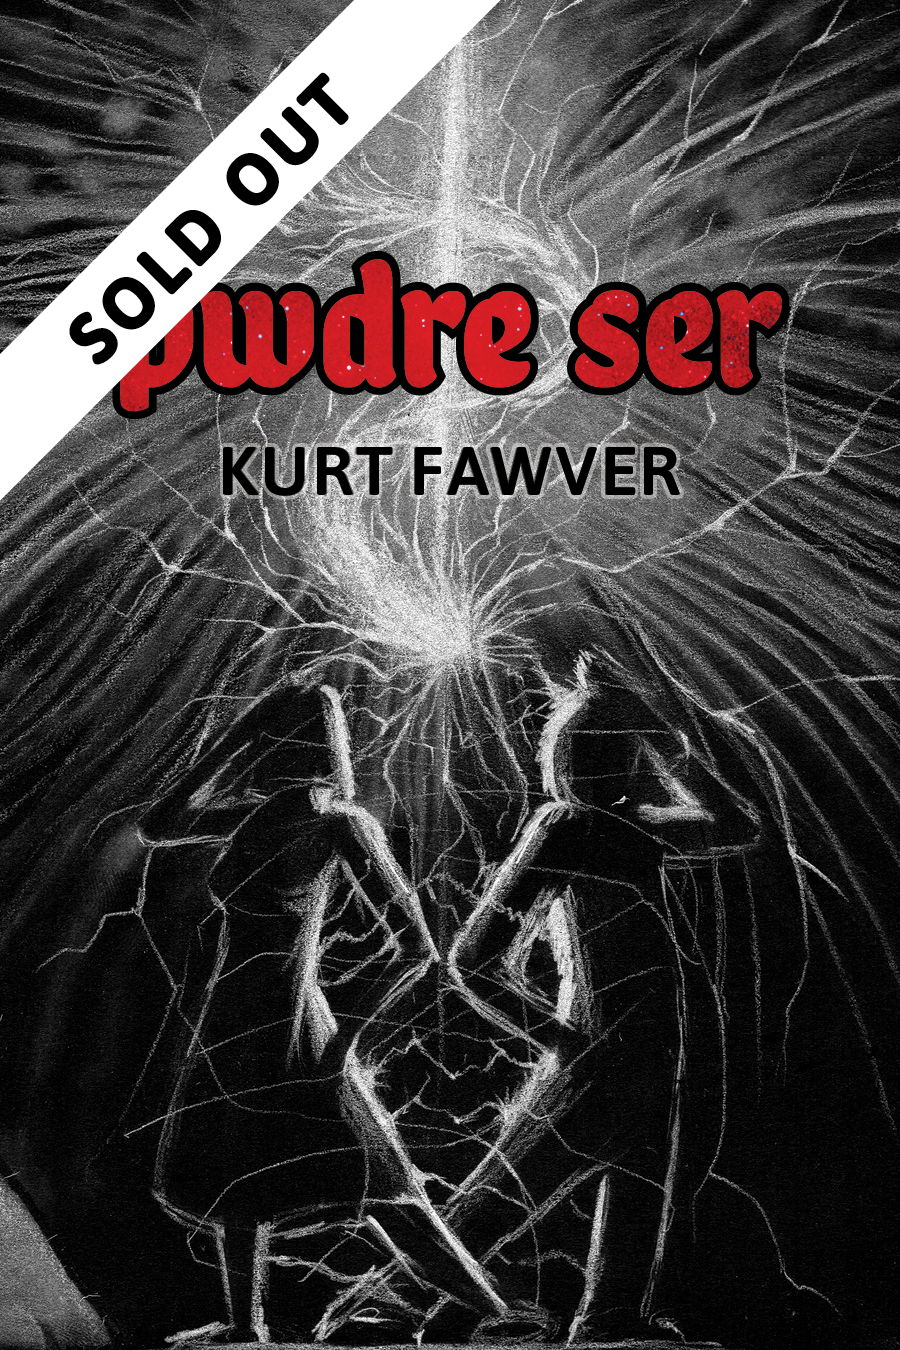 Image of Pwdre Ser (Kurt Fawver)